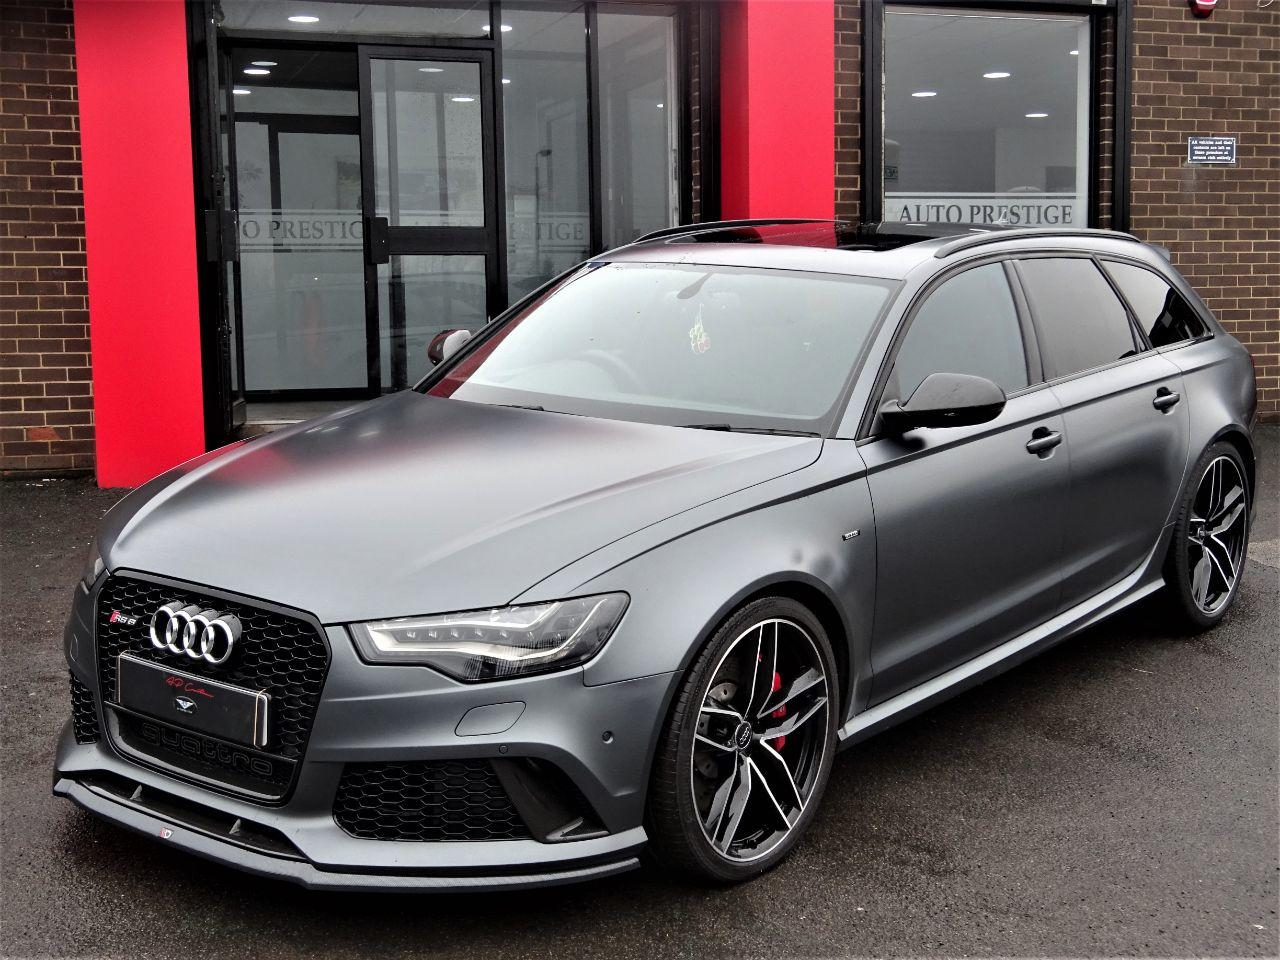 Audi RS6 4.0T FSI V8 Bi-Turbo Quattro 5dr RARE MATT GREY MASSIVE SPECIFICATION CARBON PACK PAN ROOF Estate Petrol Grey at Autoprestige Bradford